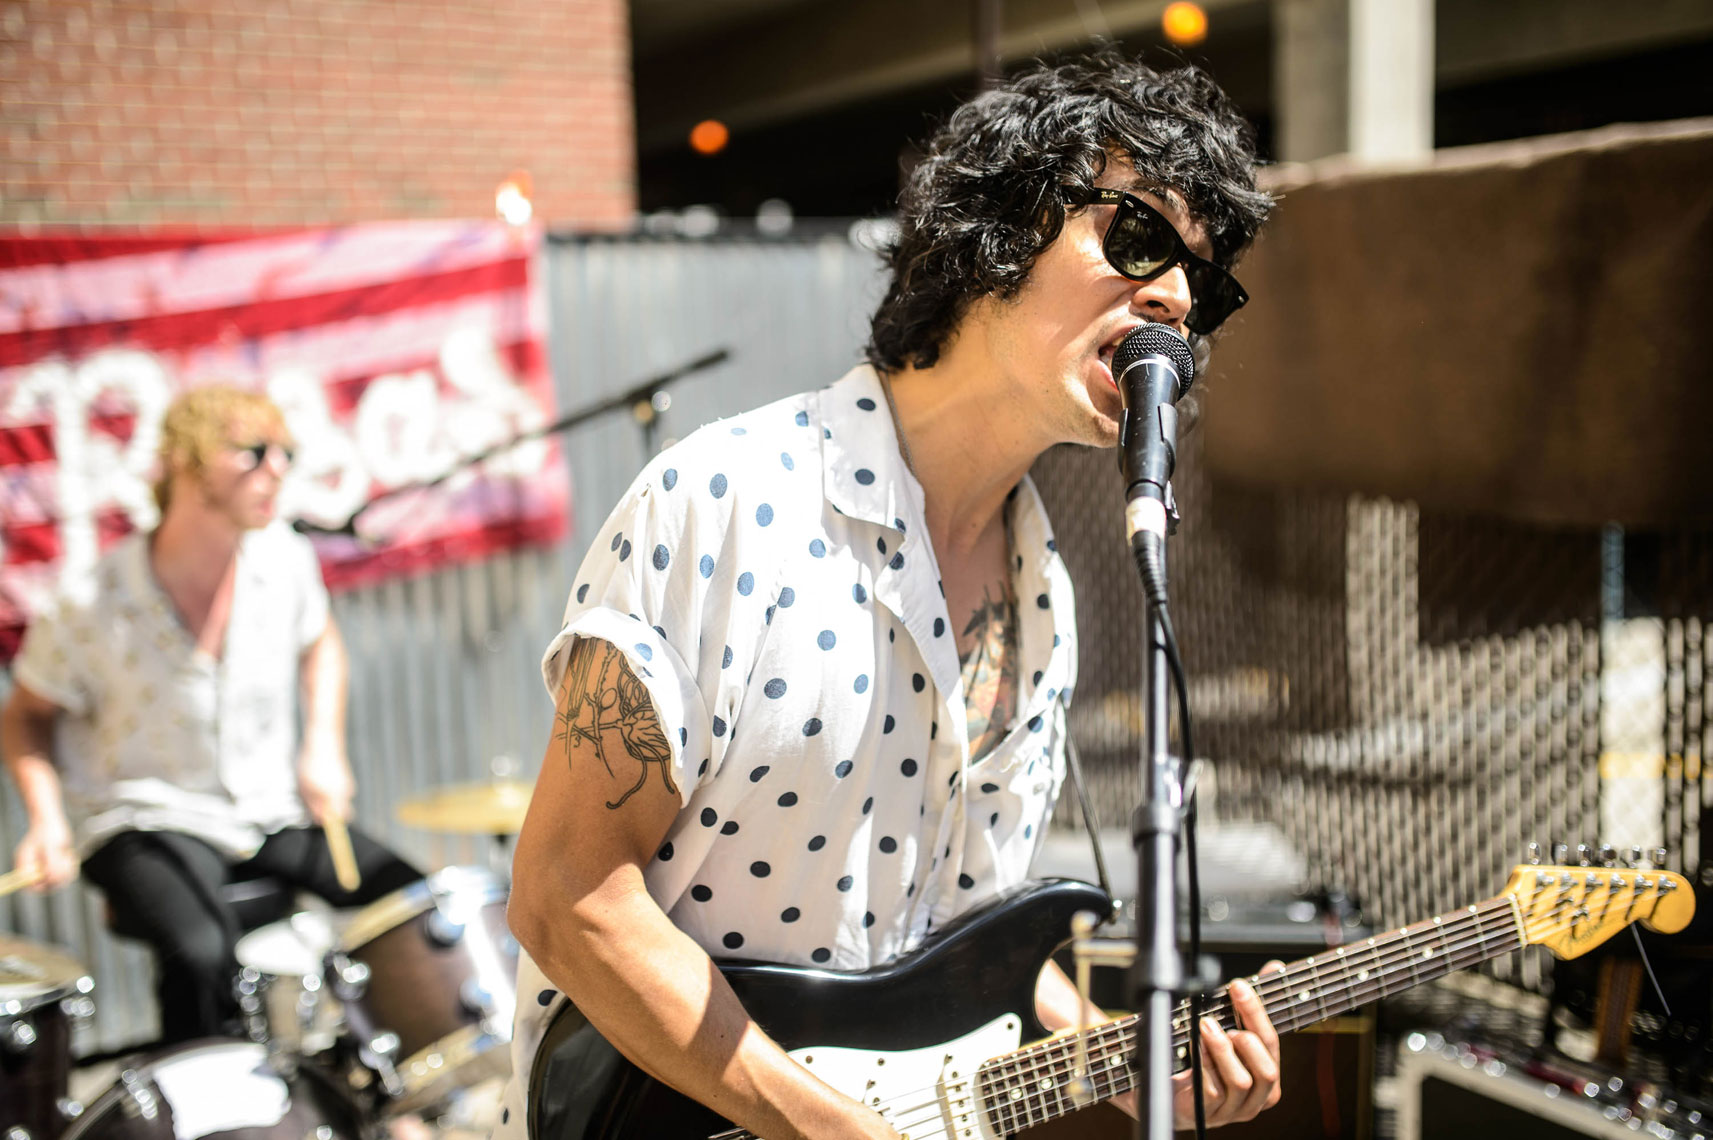 Las-Rosas-performs-during-Hopscotch-2014